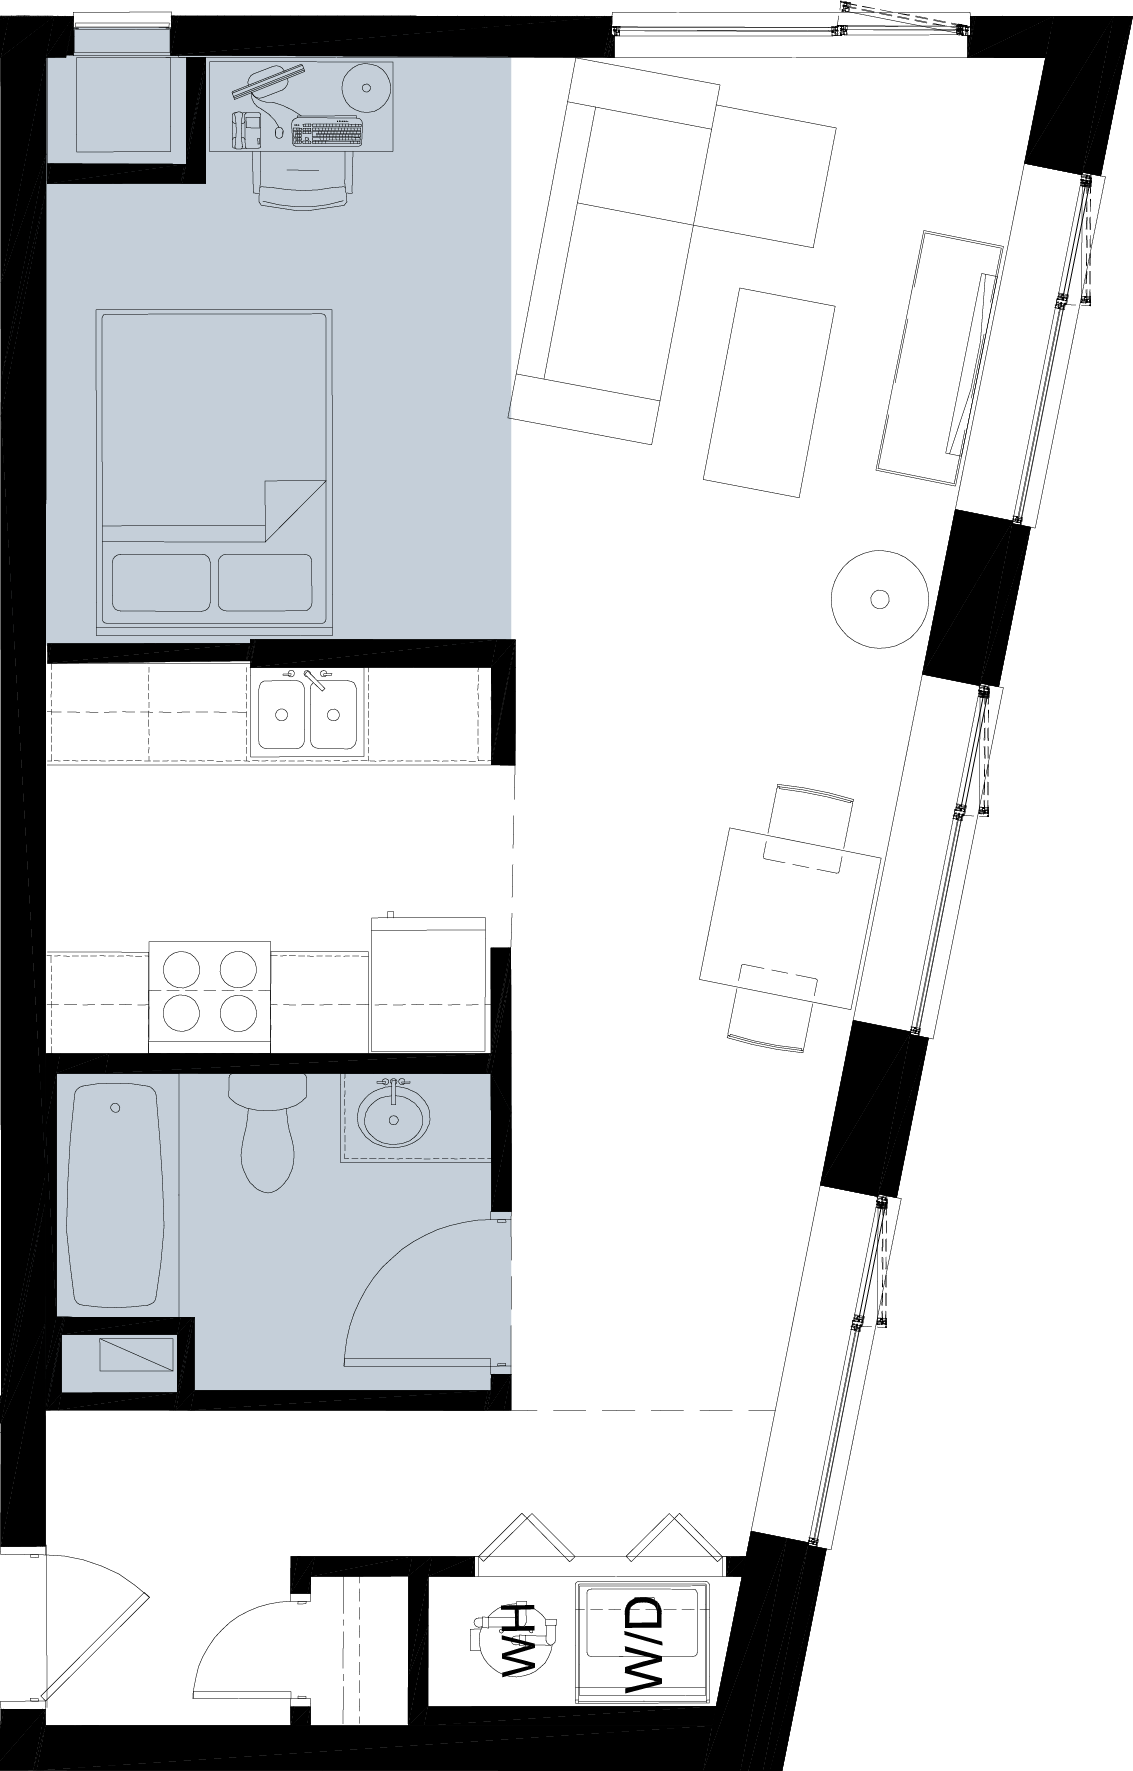 Floor Plan Image | Diamond 6